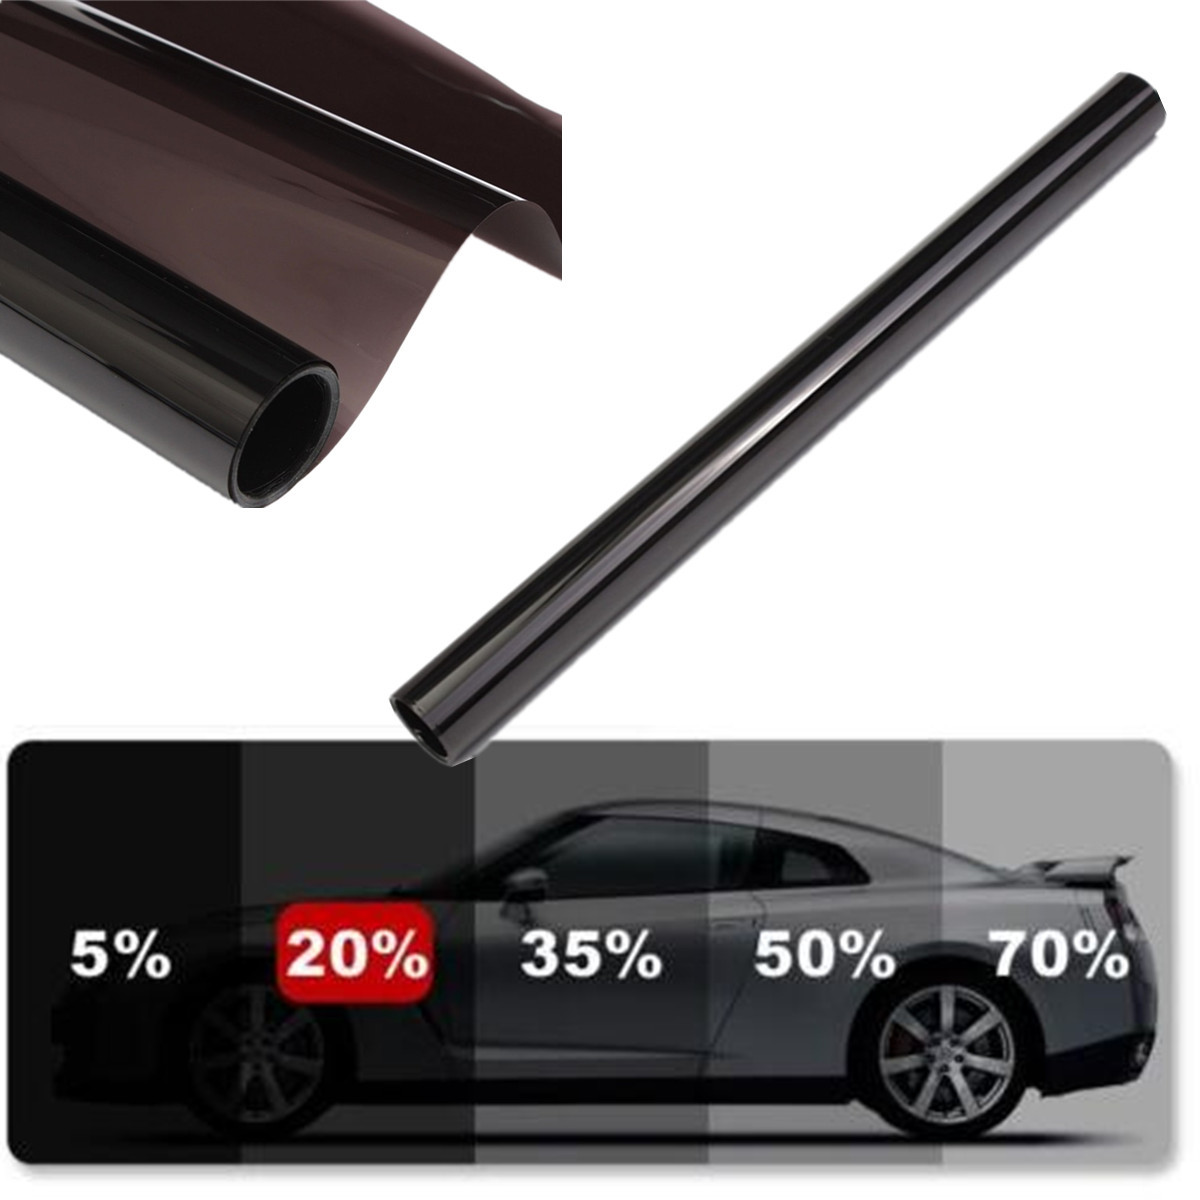 50x600cm Car Window Tint Film Glass VLT 1percent 5percent 15percent 20percent 30percent 35percent 50percent Roll 1 PLY Car Auto House Commercial Solar Protection Summer